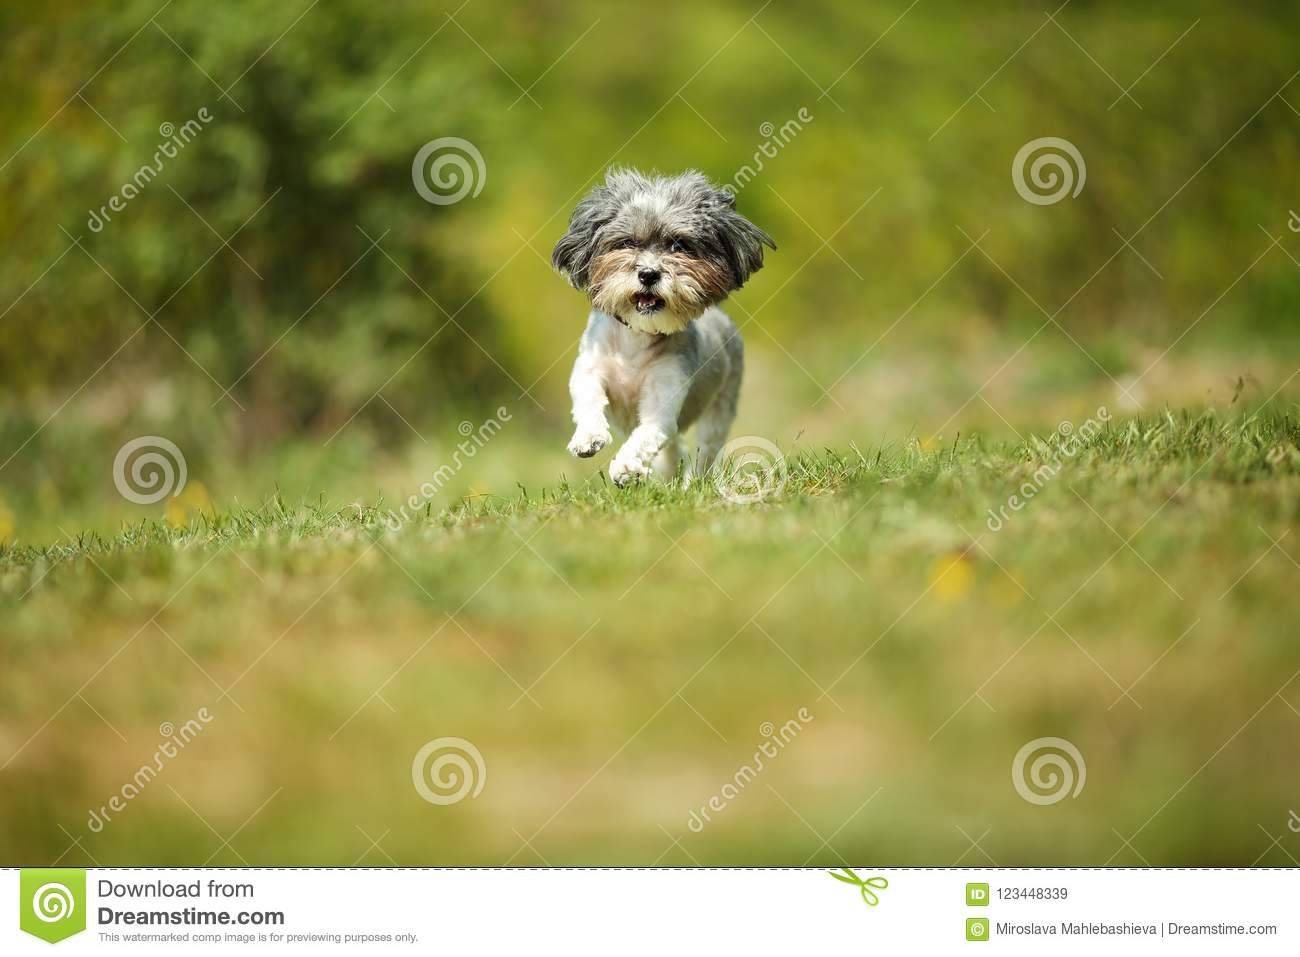 Adorable And Happy Bichon Havanese Dog With Summer Haircut Running